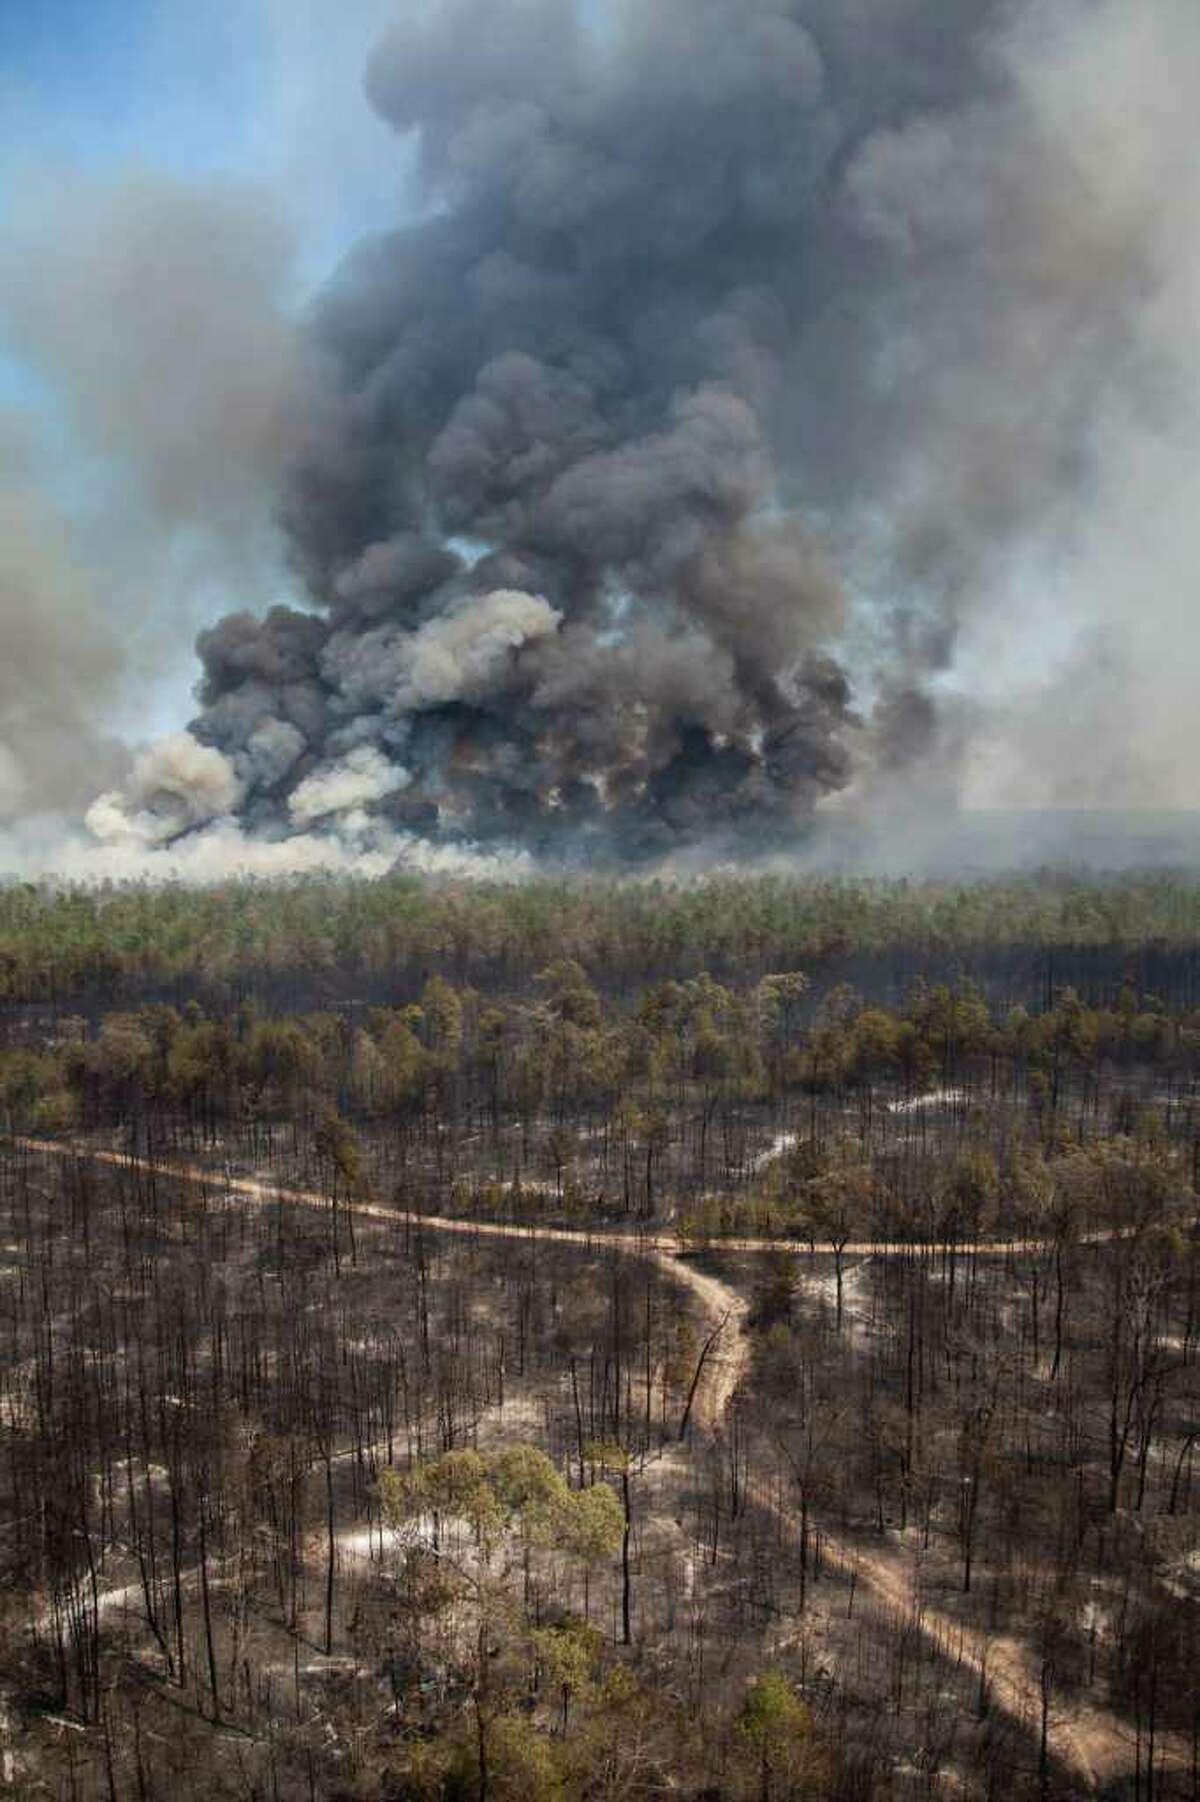 Blackened forest is left behind as large wildfire burns on Tuesday, Sept. 6, 2011, near Magnolia, Texas. A large blaze burning in forests in Montgomery, Waller and Grimes counties north and west of Houston contributed to more than 1,000 homes that have been destroyed in at least 57 Texas fires. ( Smiley N. Pool / Houston Chronicle )